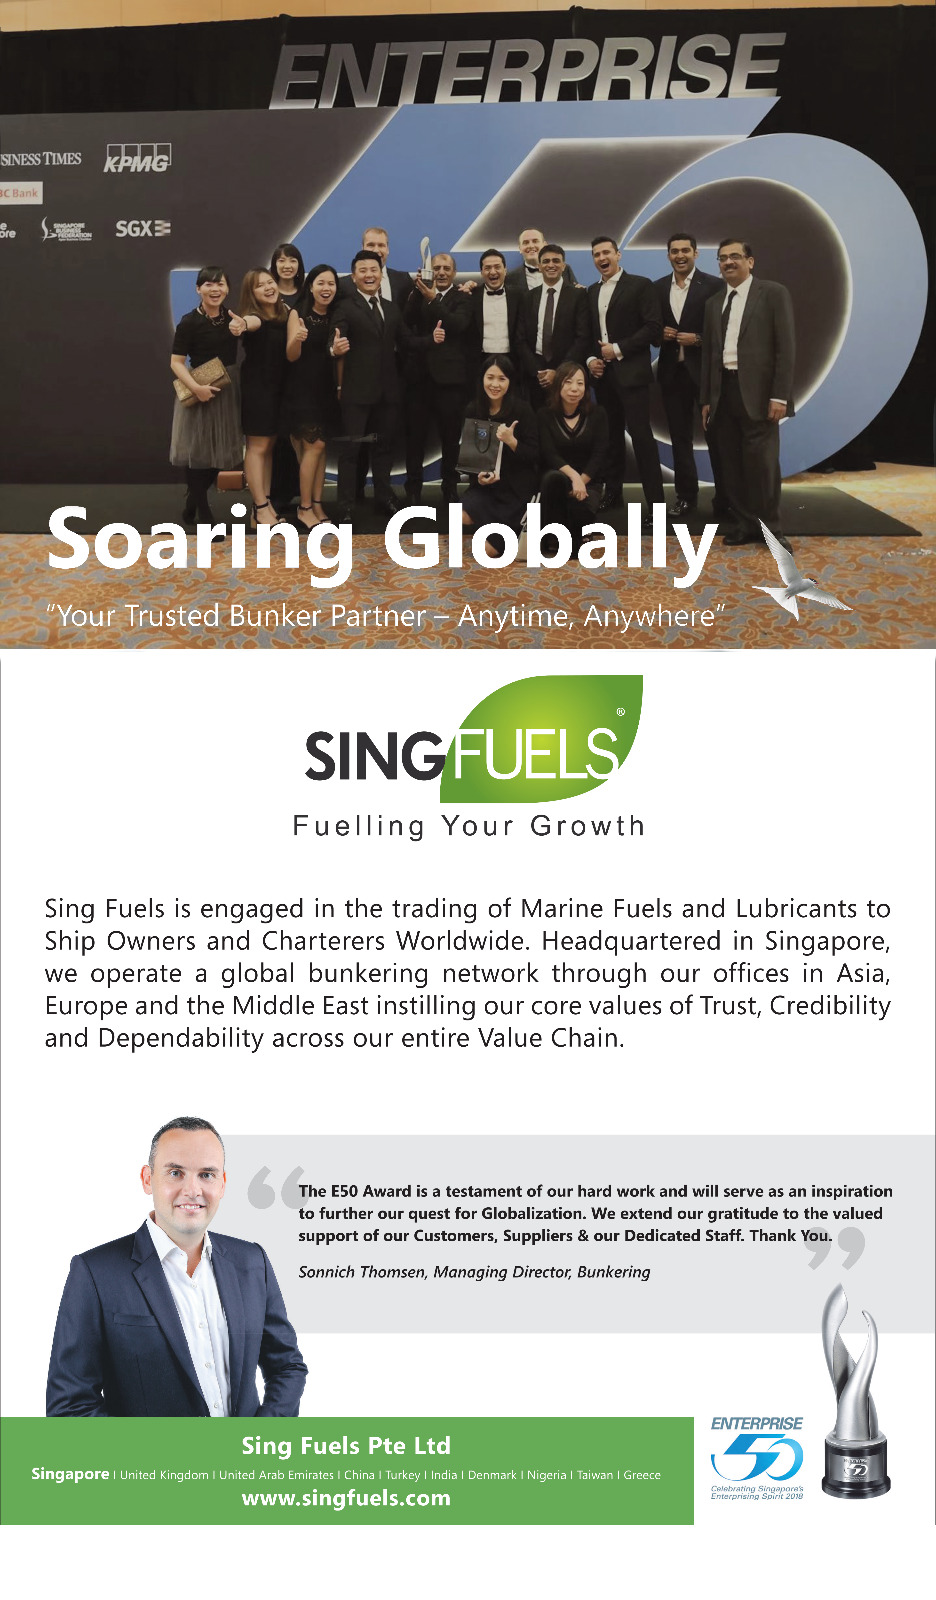 Singfuels win the Enterprise 50 awards